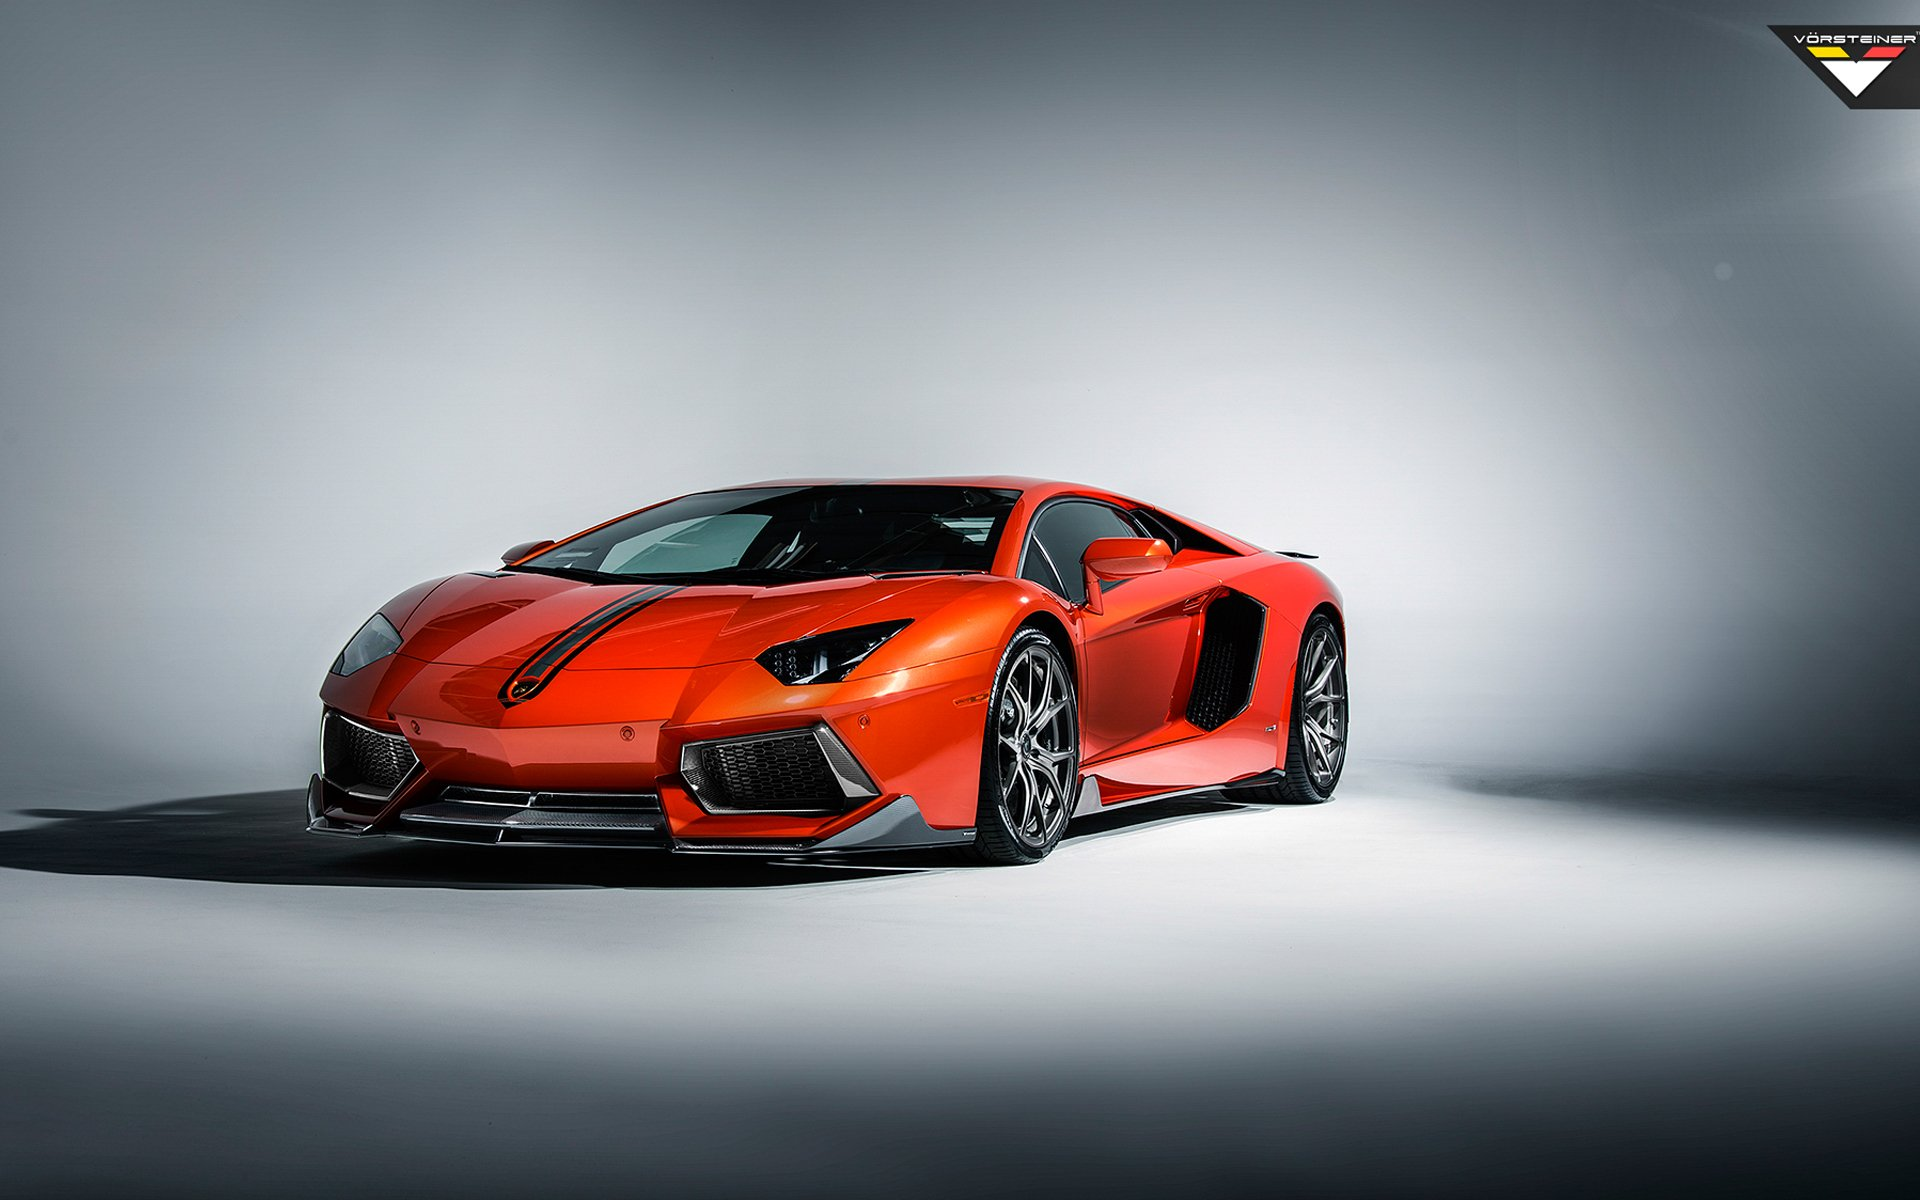 2014 Lamborghini Aventador V LP 740 by Vorsteiner Wallpapers HD 1920x1200